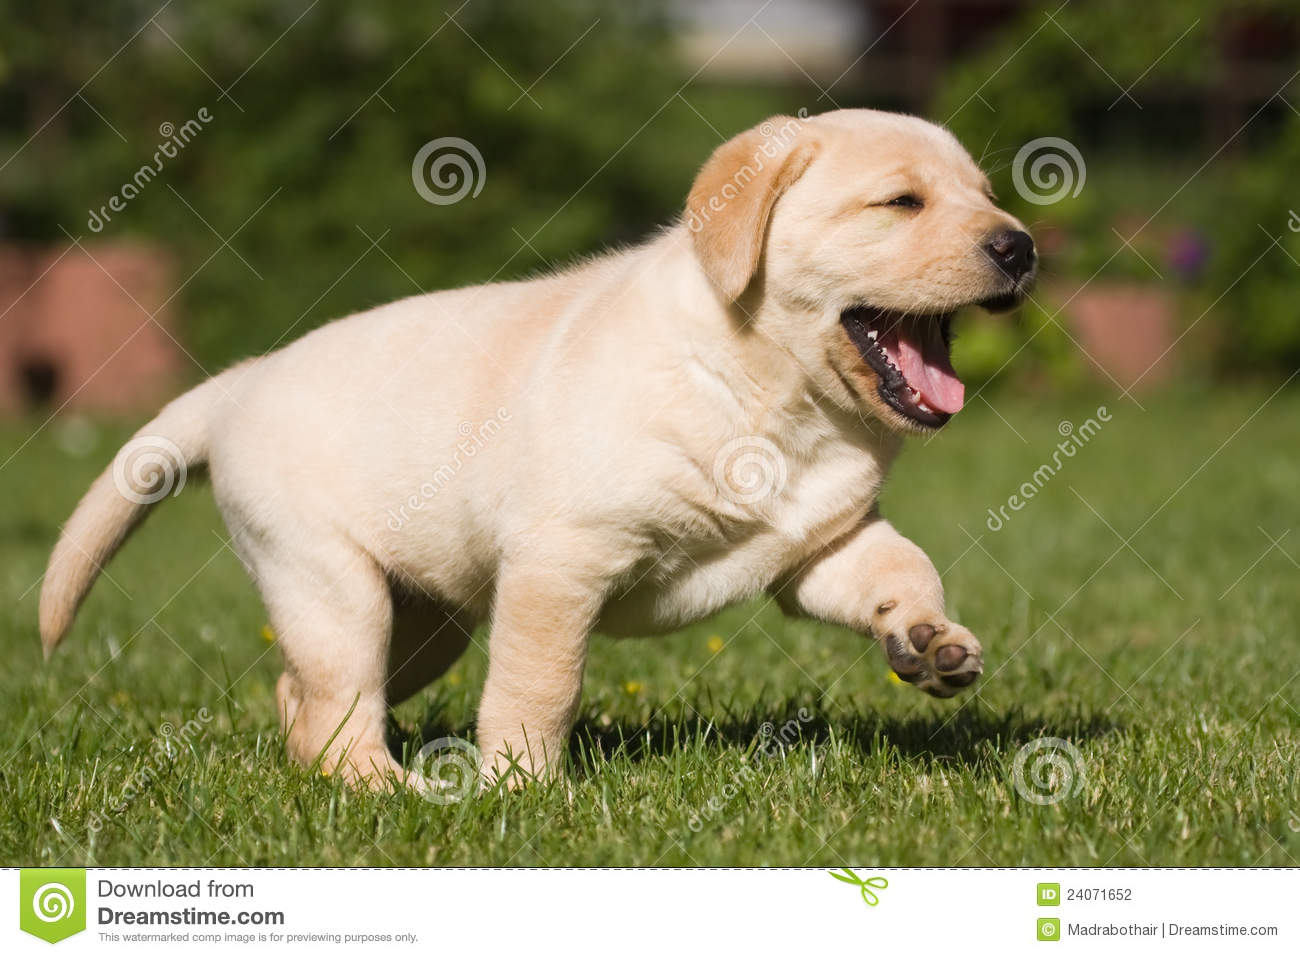 Cute labrador puppy stock photo. Image of bark, grass - 24071652 for Cute Lab Dog Puppy  568zmd